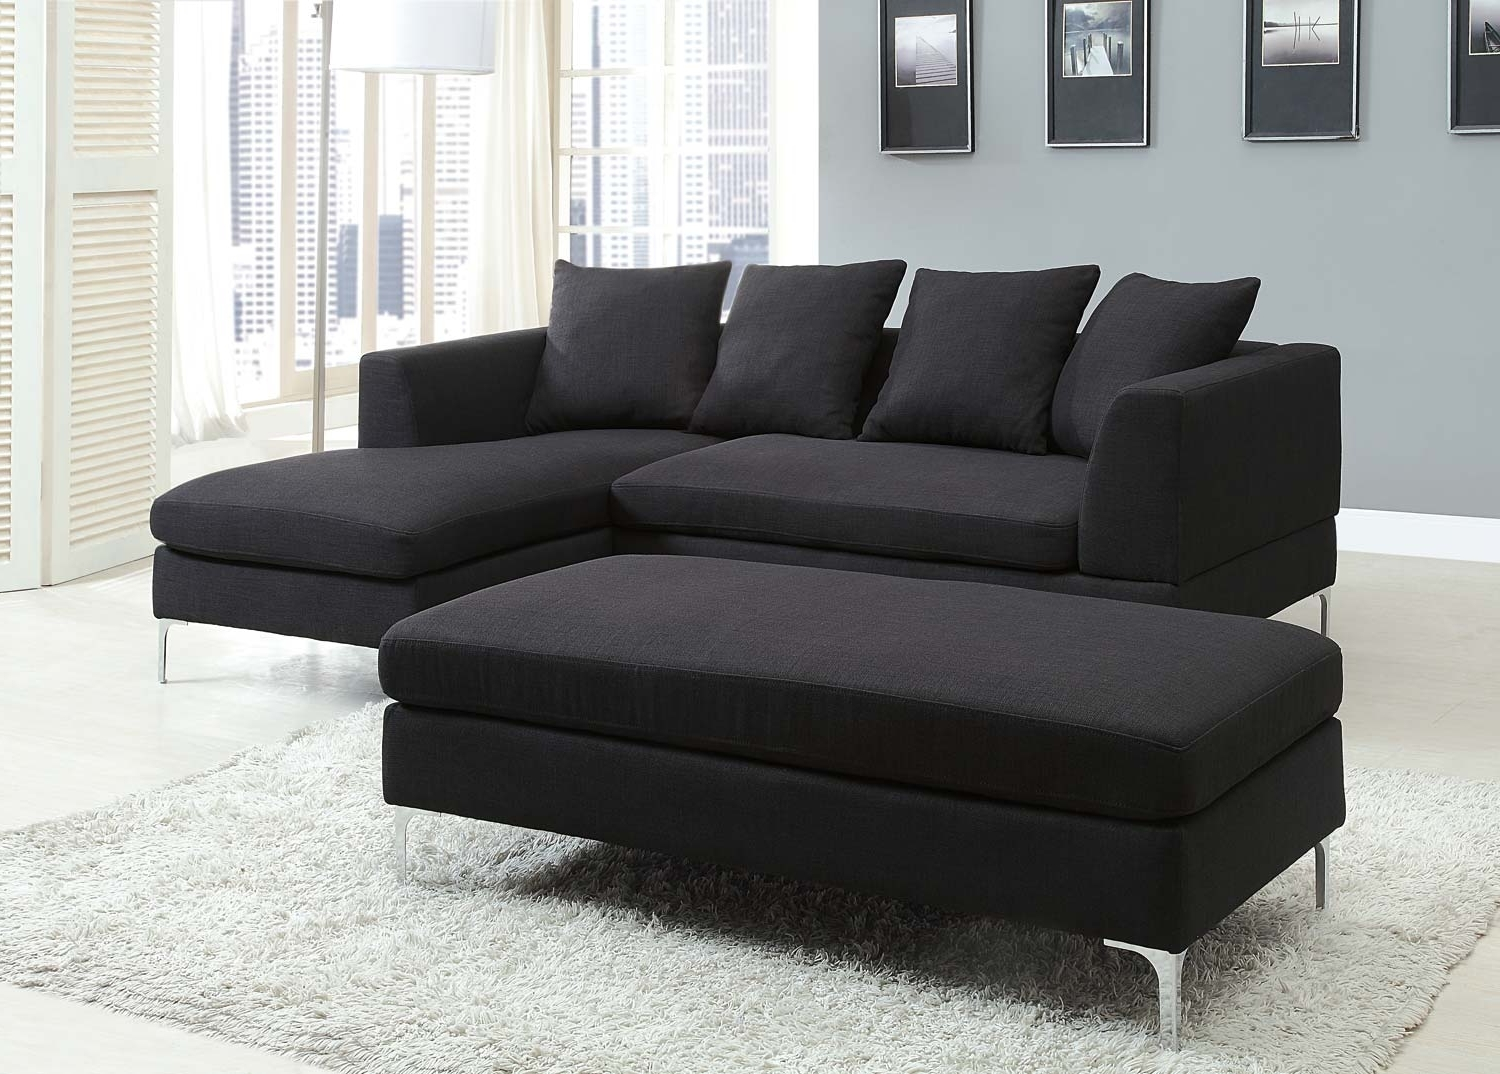 Black Sectional Sofas With Current Black Sectional Couch Cheap — Radionigerialagos (View 7 of 15)